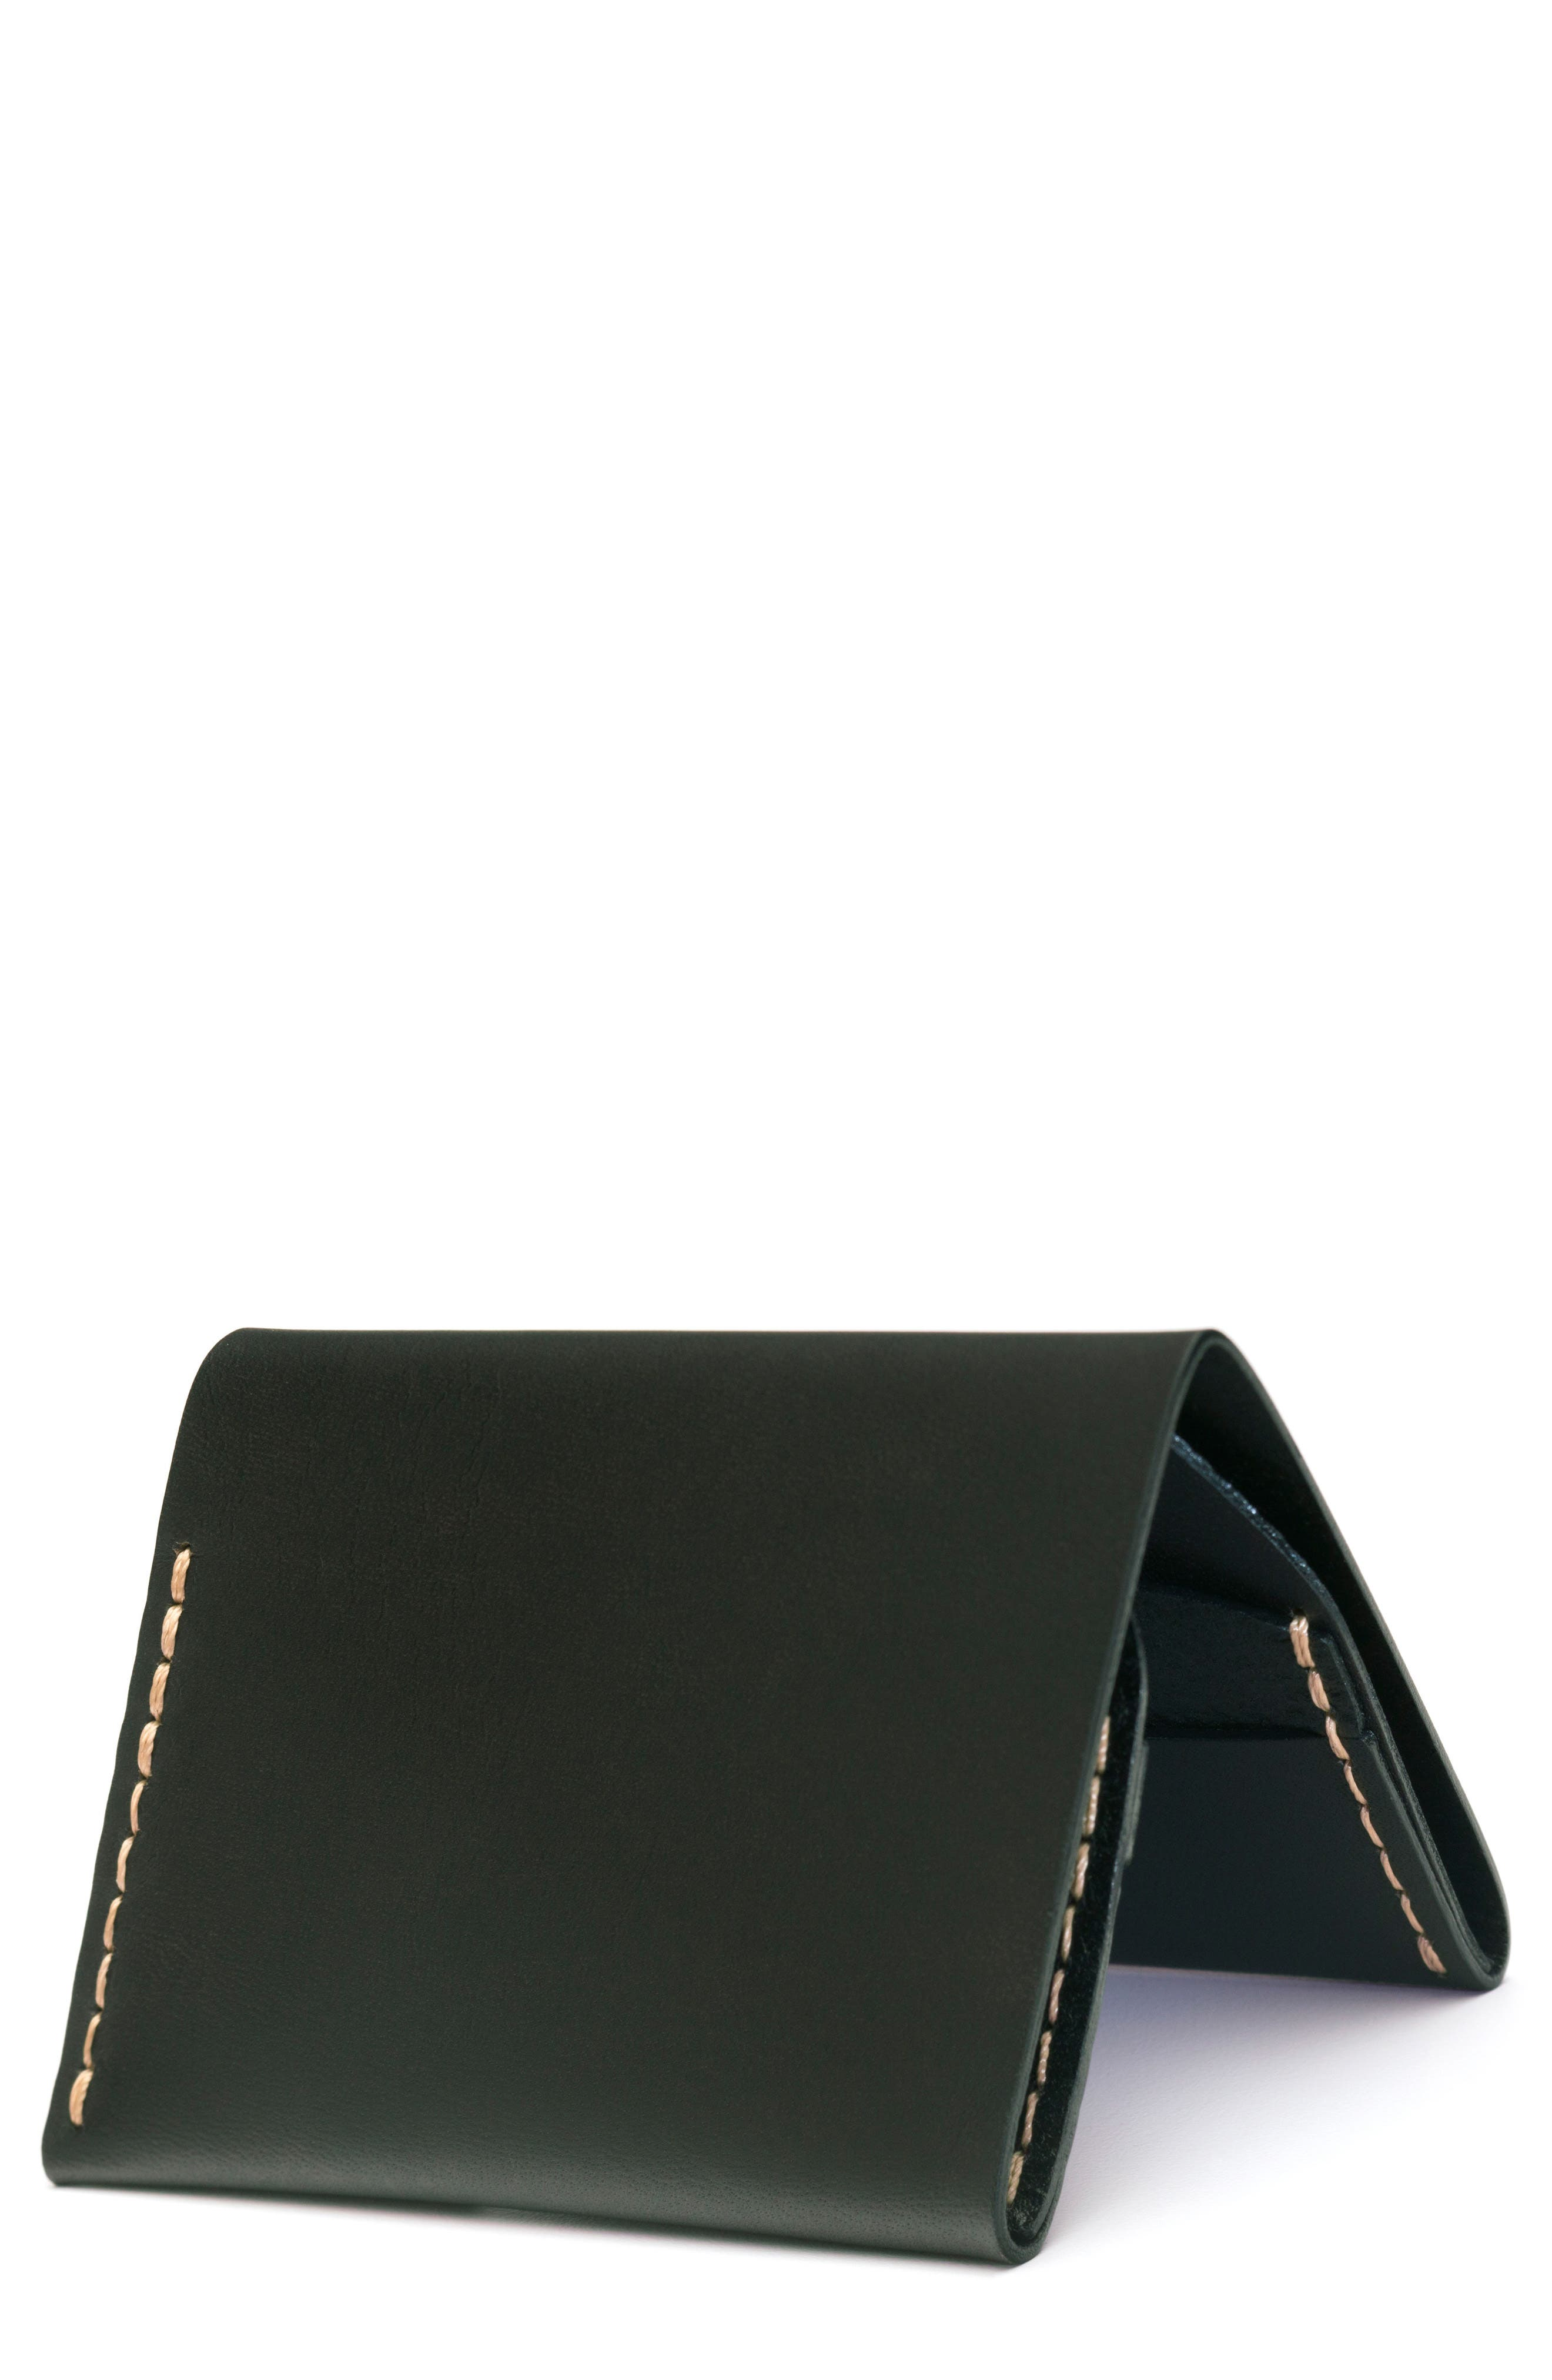 No. 4 Leather Wallet,                         Main,                         color, Green